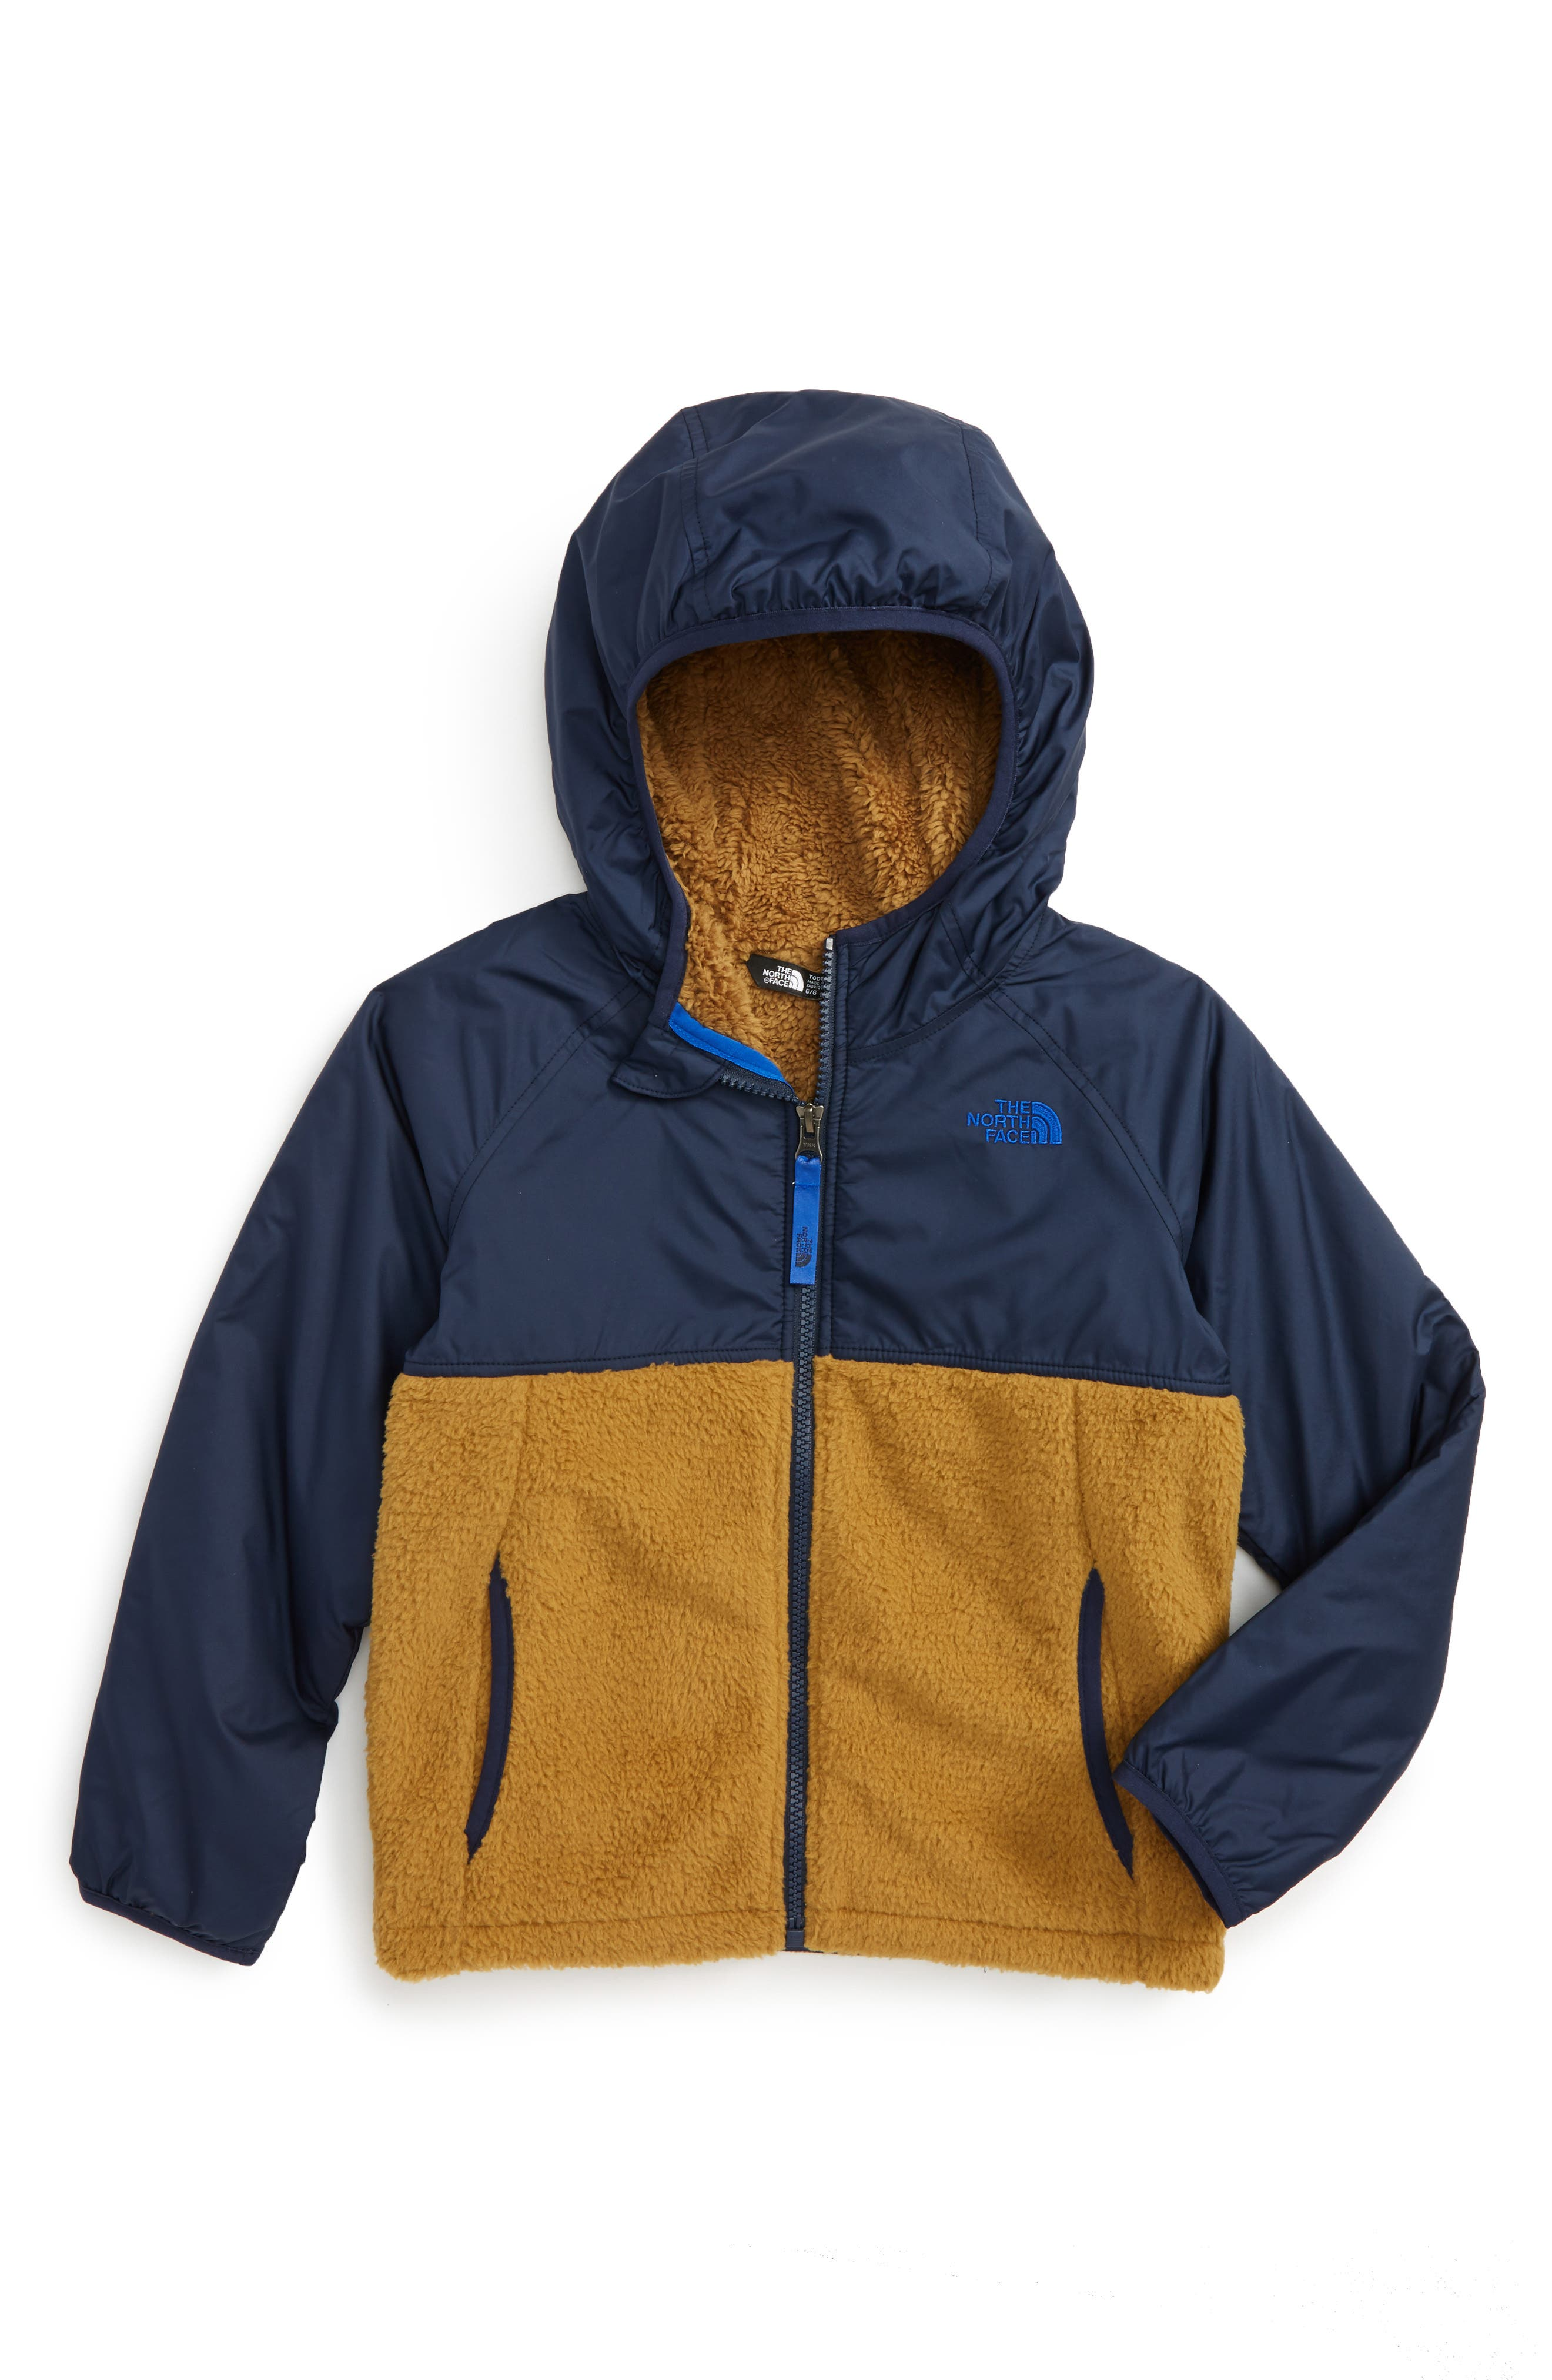 Alternate Image 1 Selected - The North Face Sherparazo Hoodie (Toddler Boys & Little Boys)